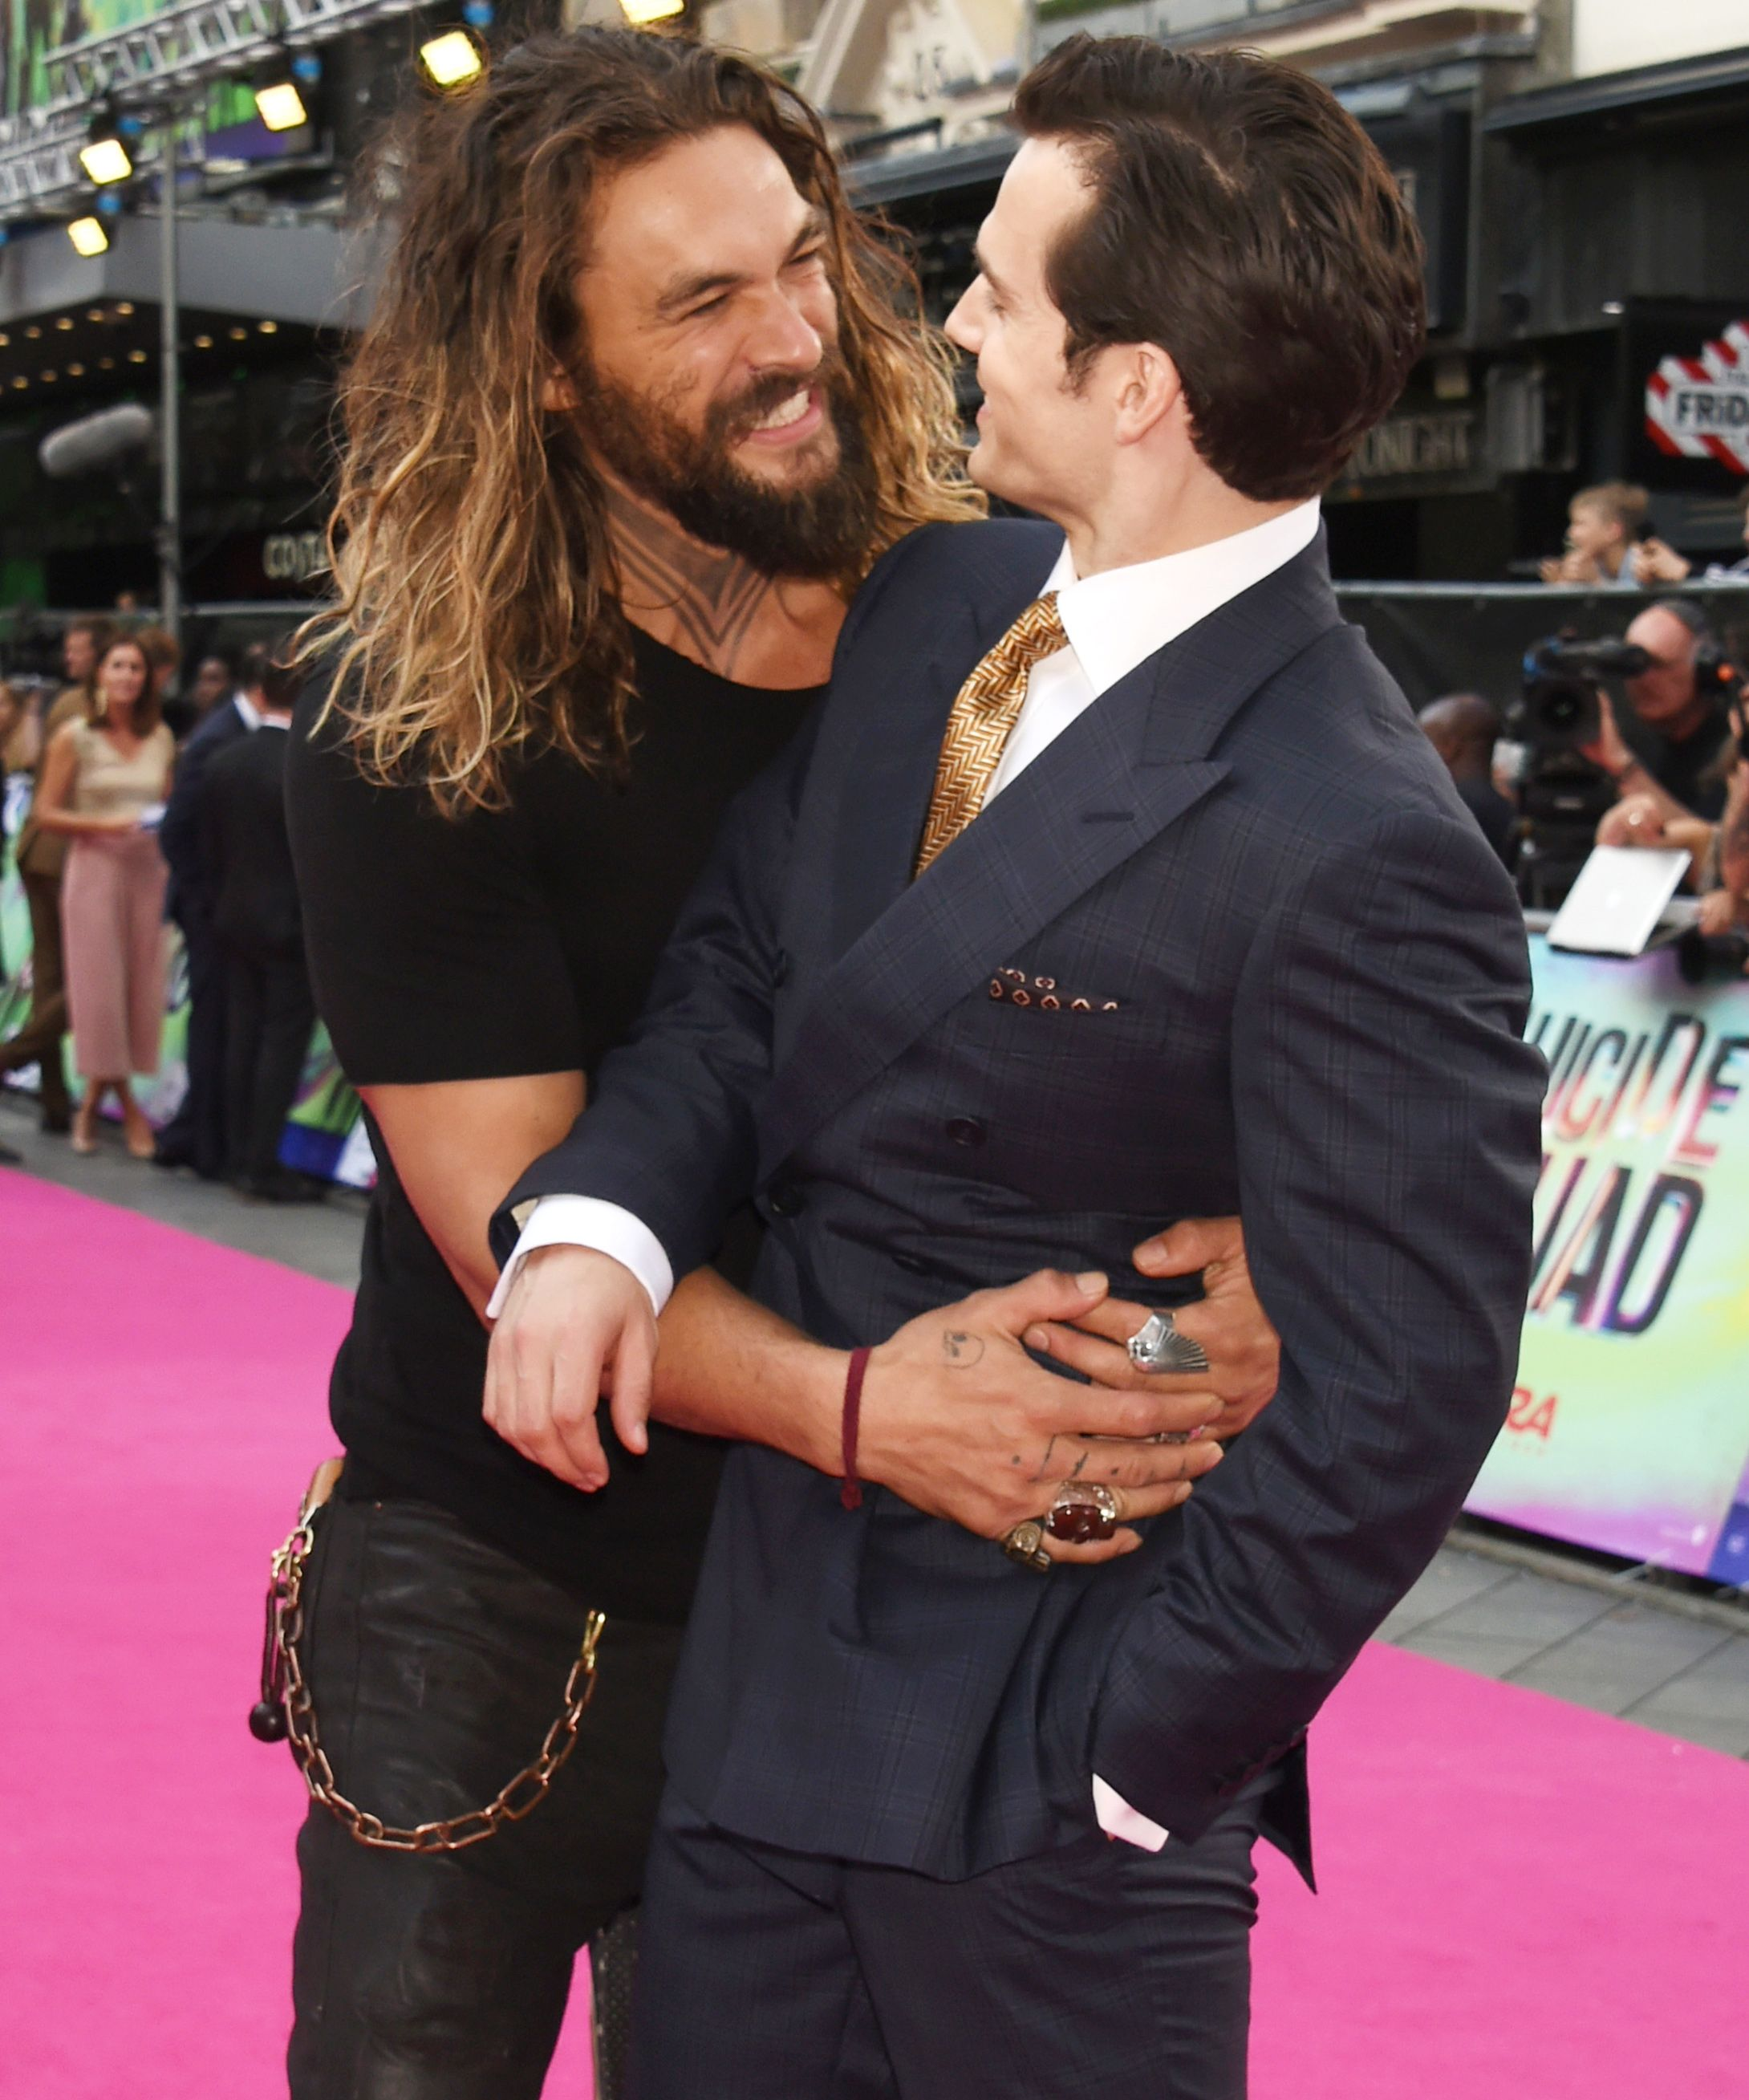 Our New Favorite Bromance: See Game Of Thrones's Jason